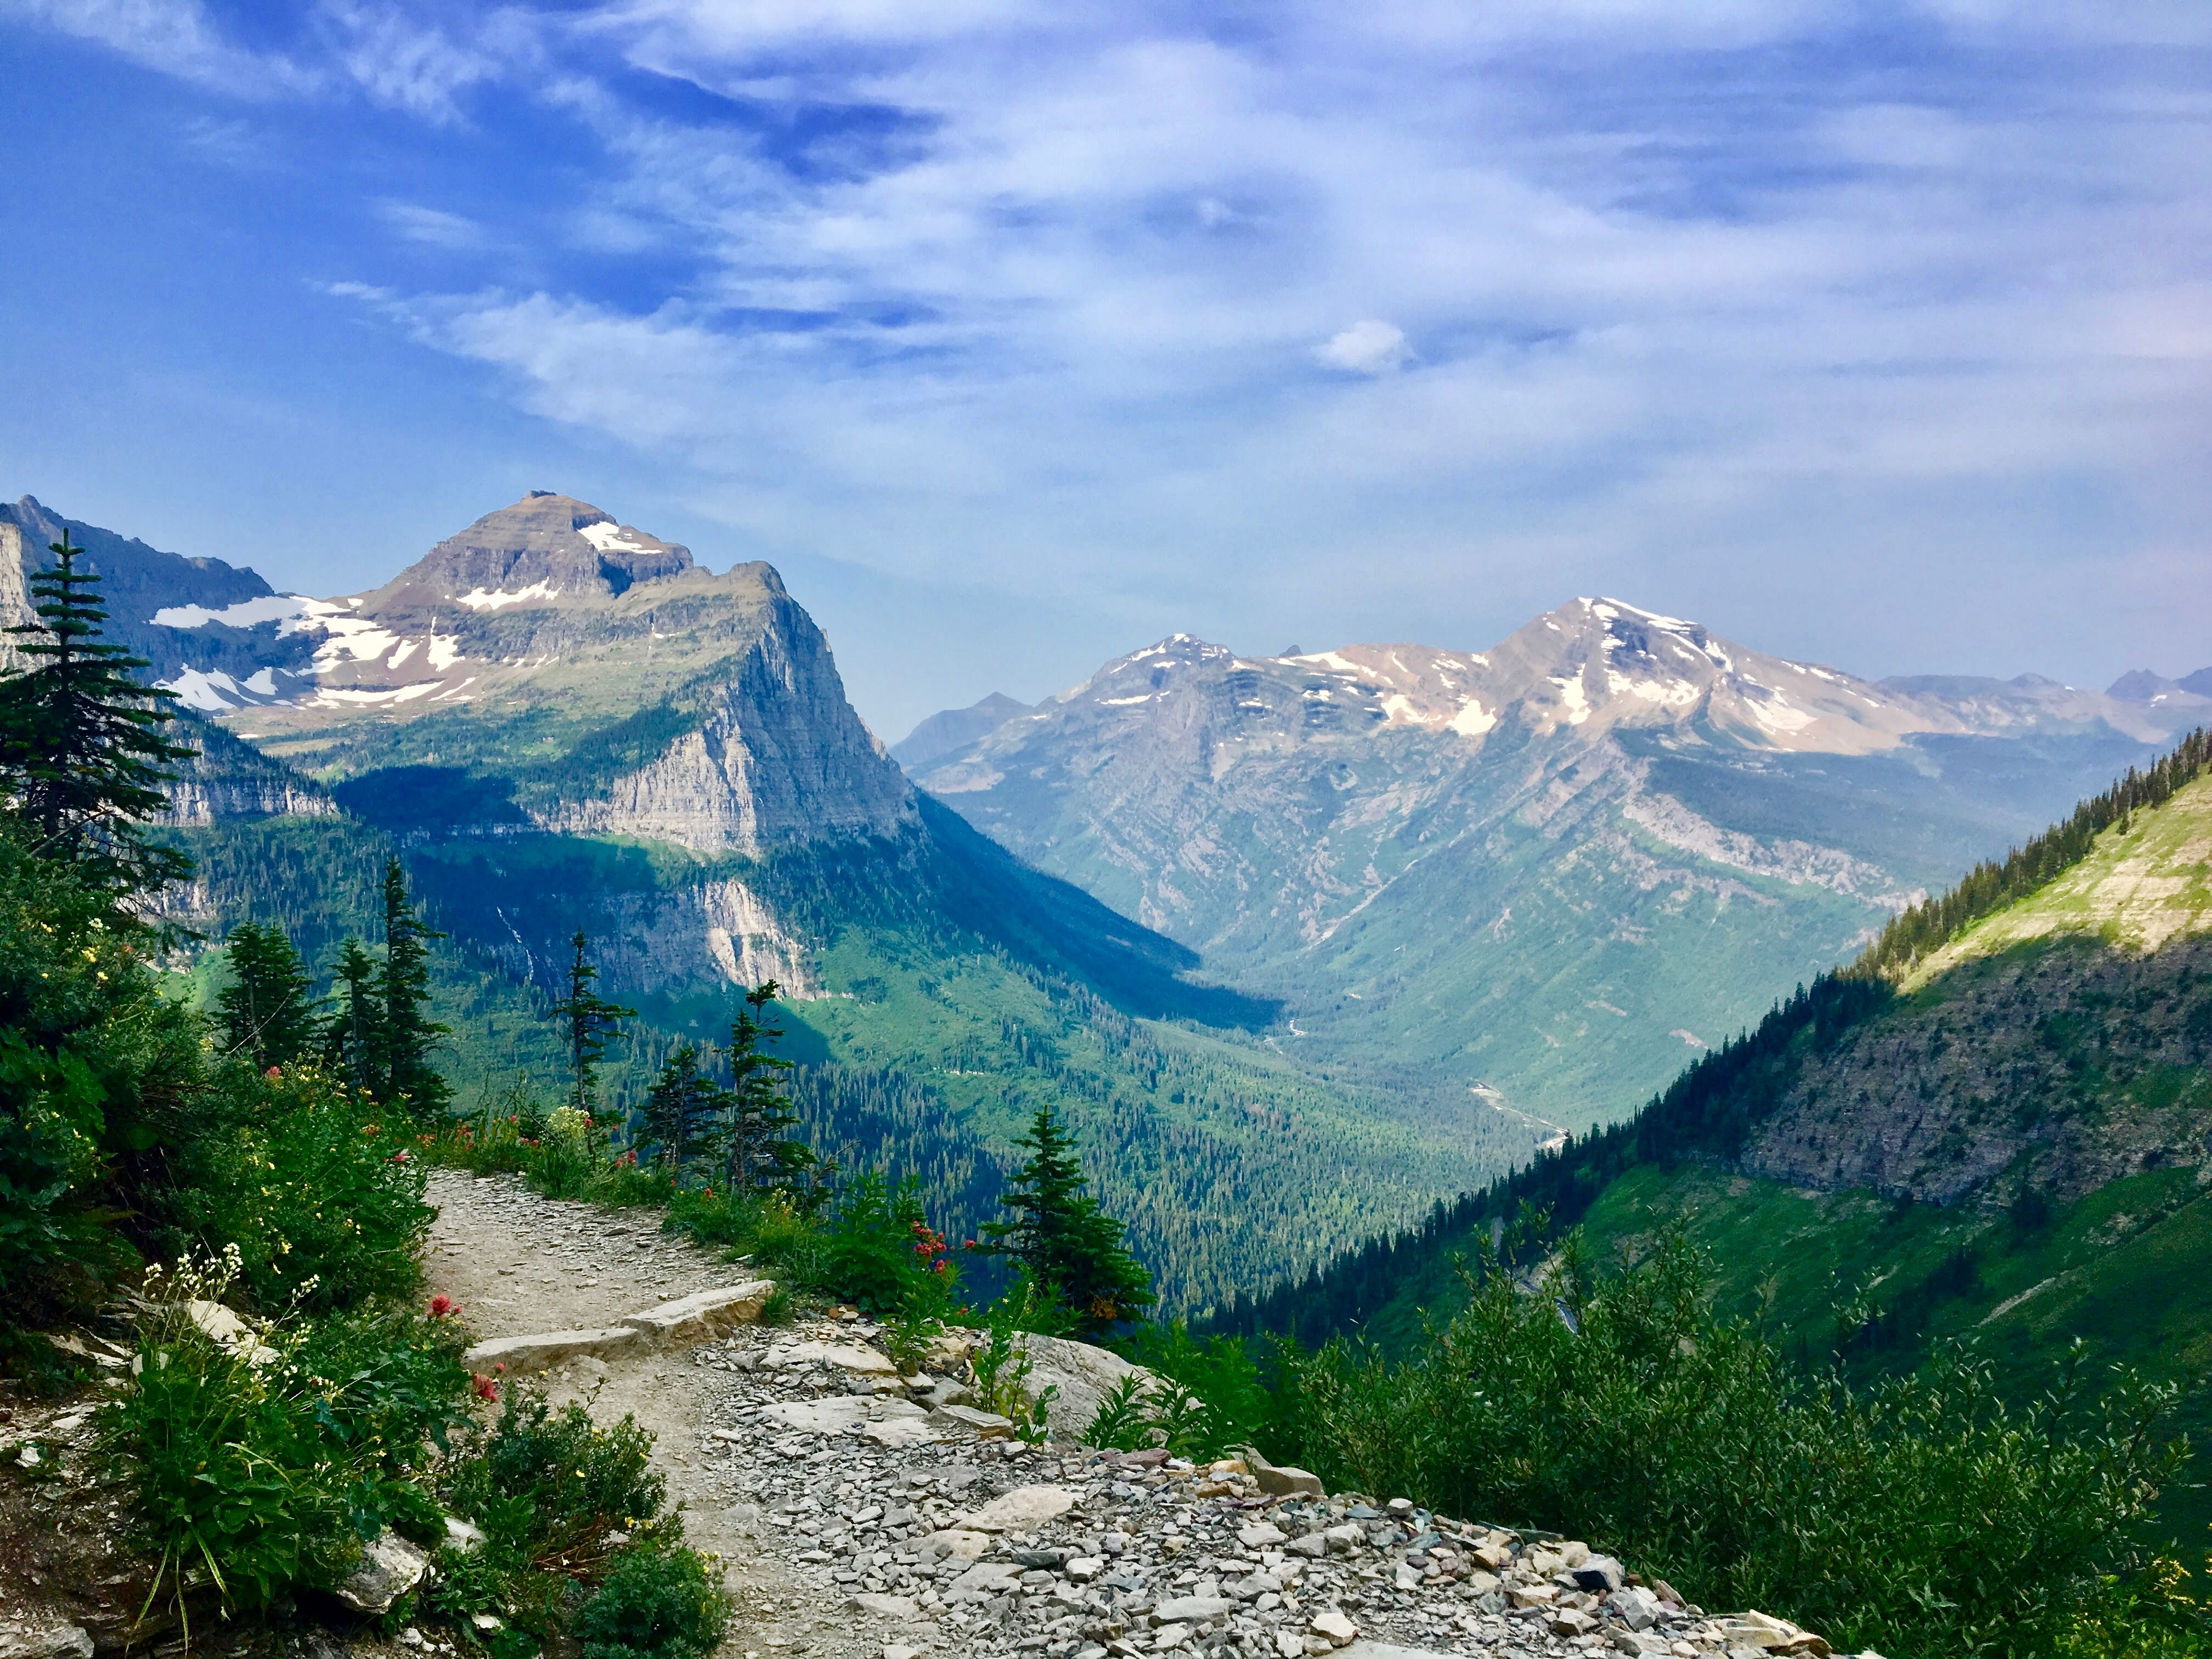 national parks, glacier national park, grinnell, highline, trail, hikes, adventure, forest, wildlife, wildflowers, nature highline trail